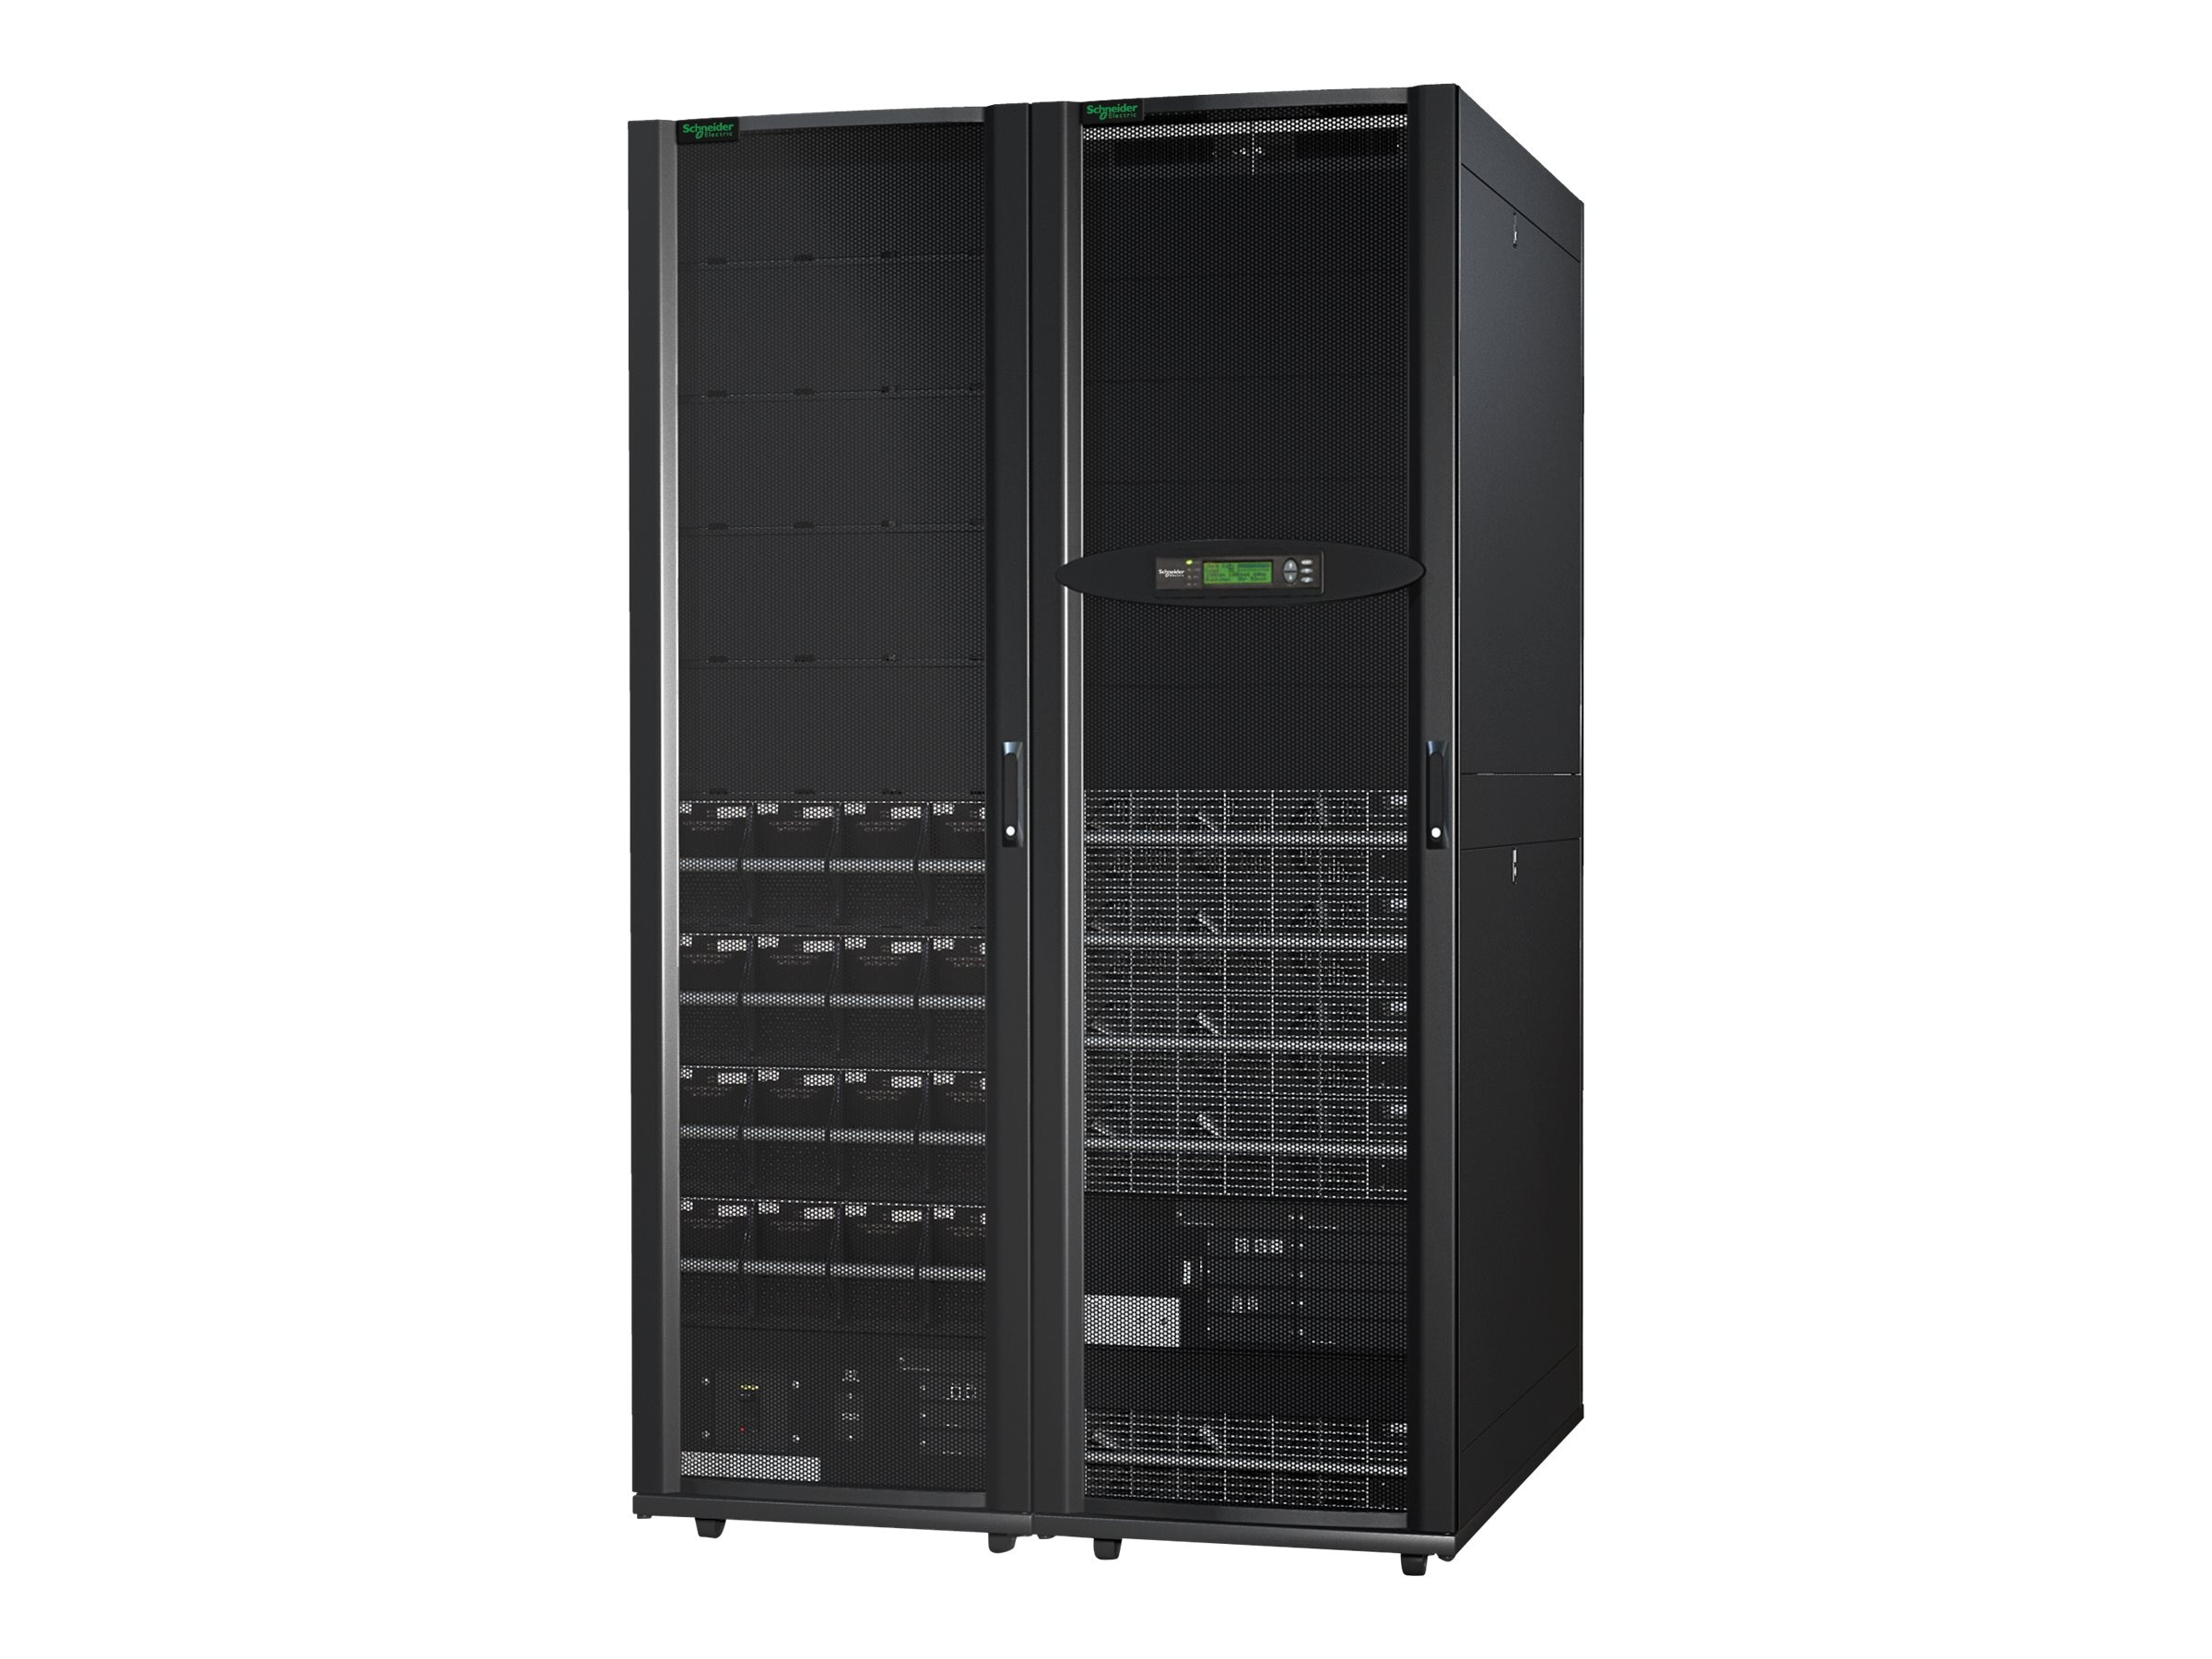 APC Symmetra PX 40kW Scalable to 100kW, 208V with Startup, SY40K100F, 14727155, Battery Backup/UPS